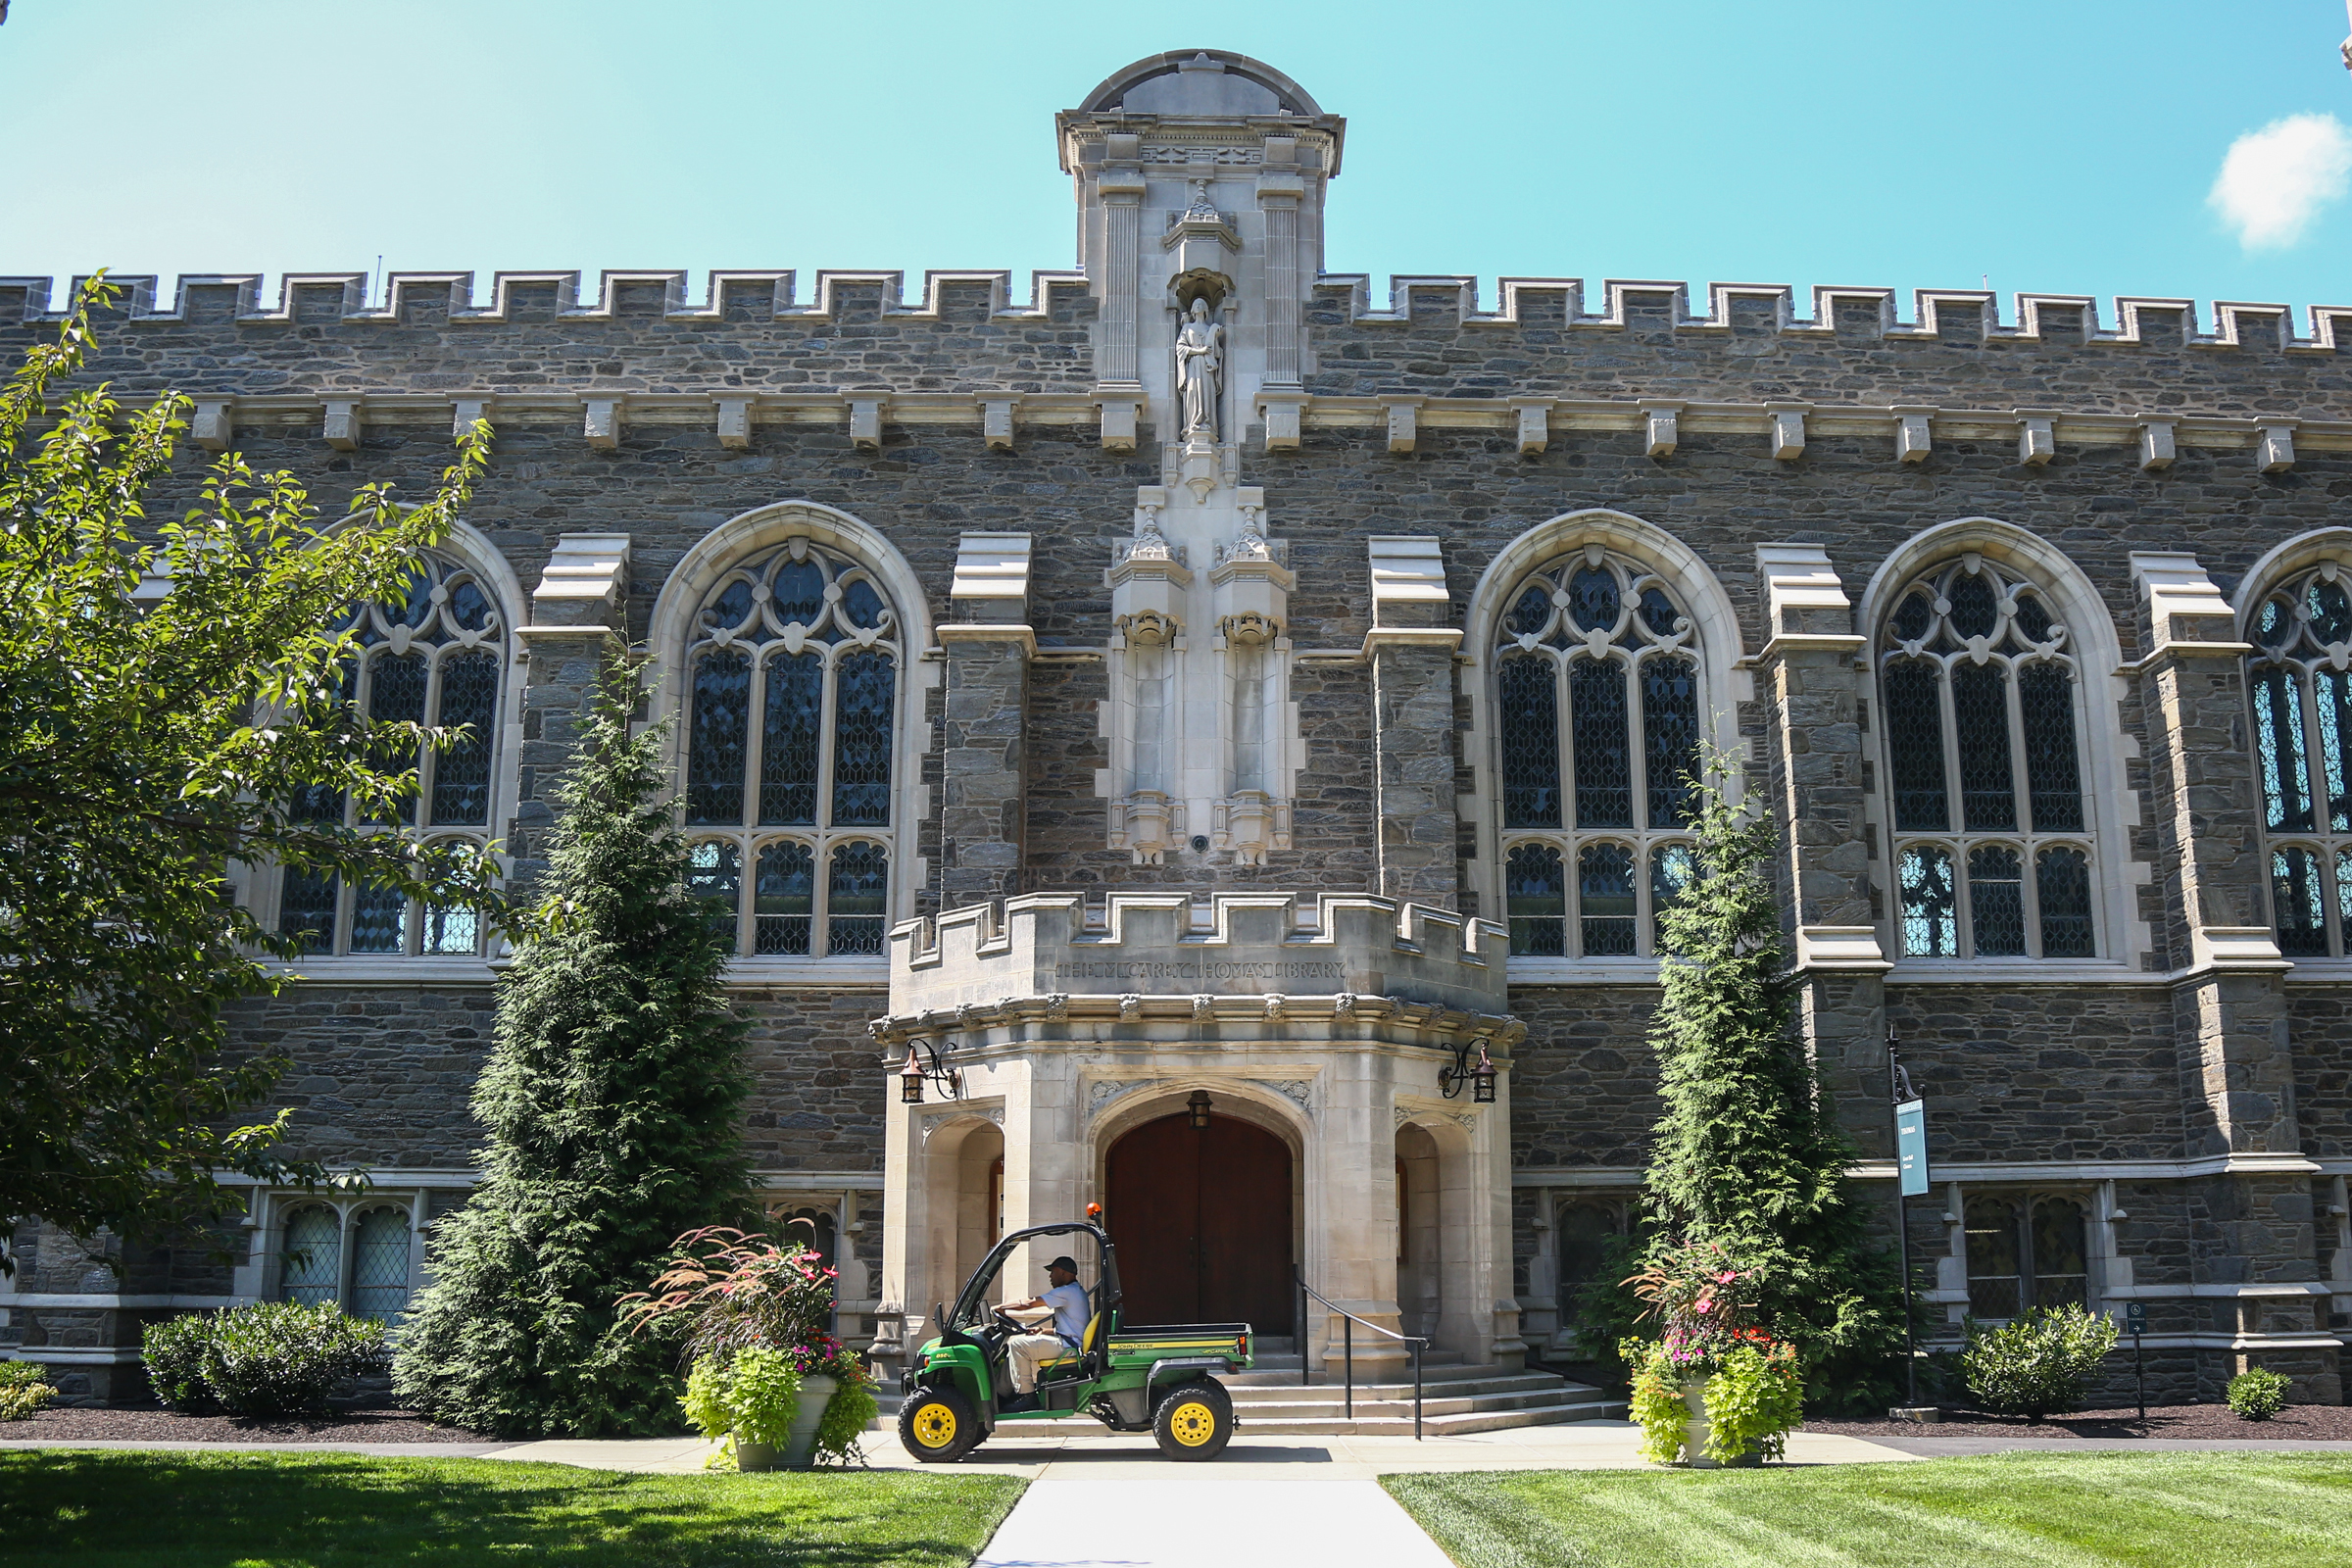 The Thomas Building sits in the center of campus and has classroom spaces, a library, and a great hall, also named after Thomas. Trustees have decided the library and the great hall will no longer be referred to as Thomas, though her name will be left etched on the building. (Emily Cohen/for The Inquirer)